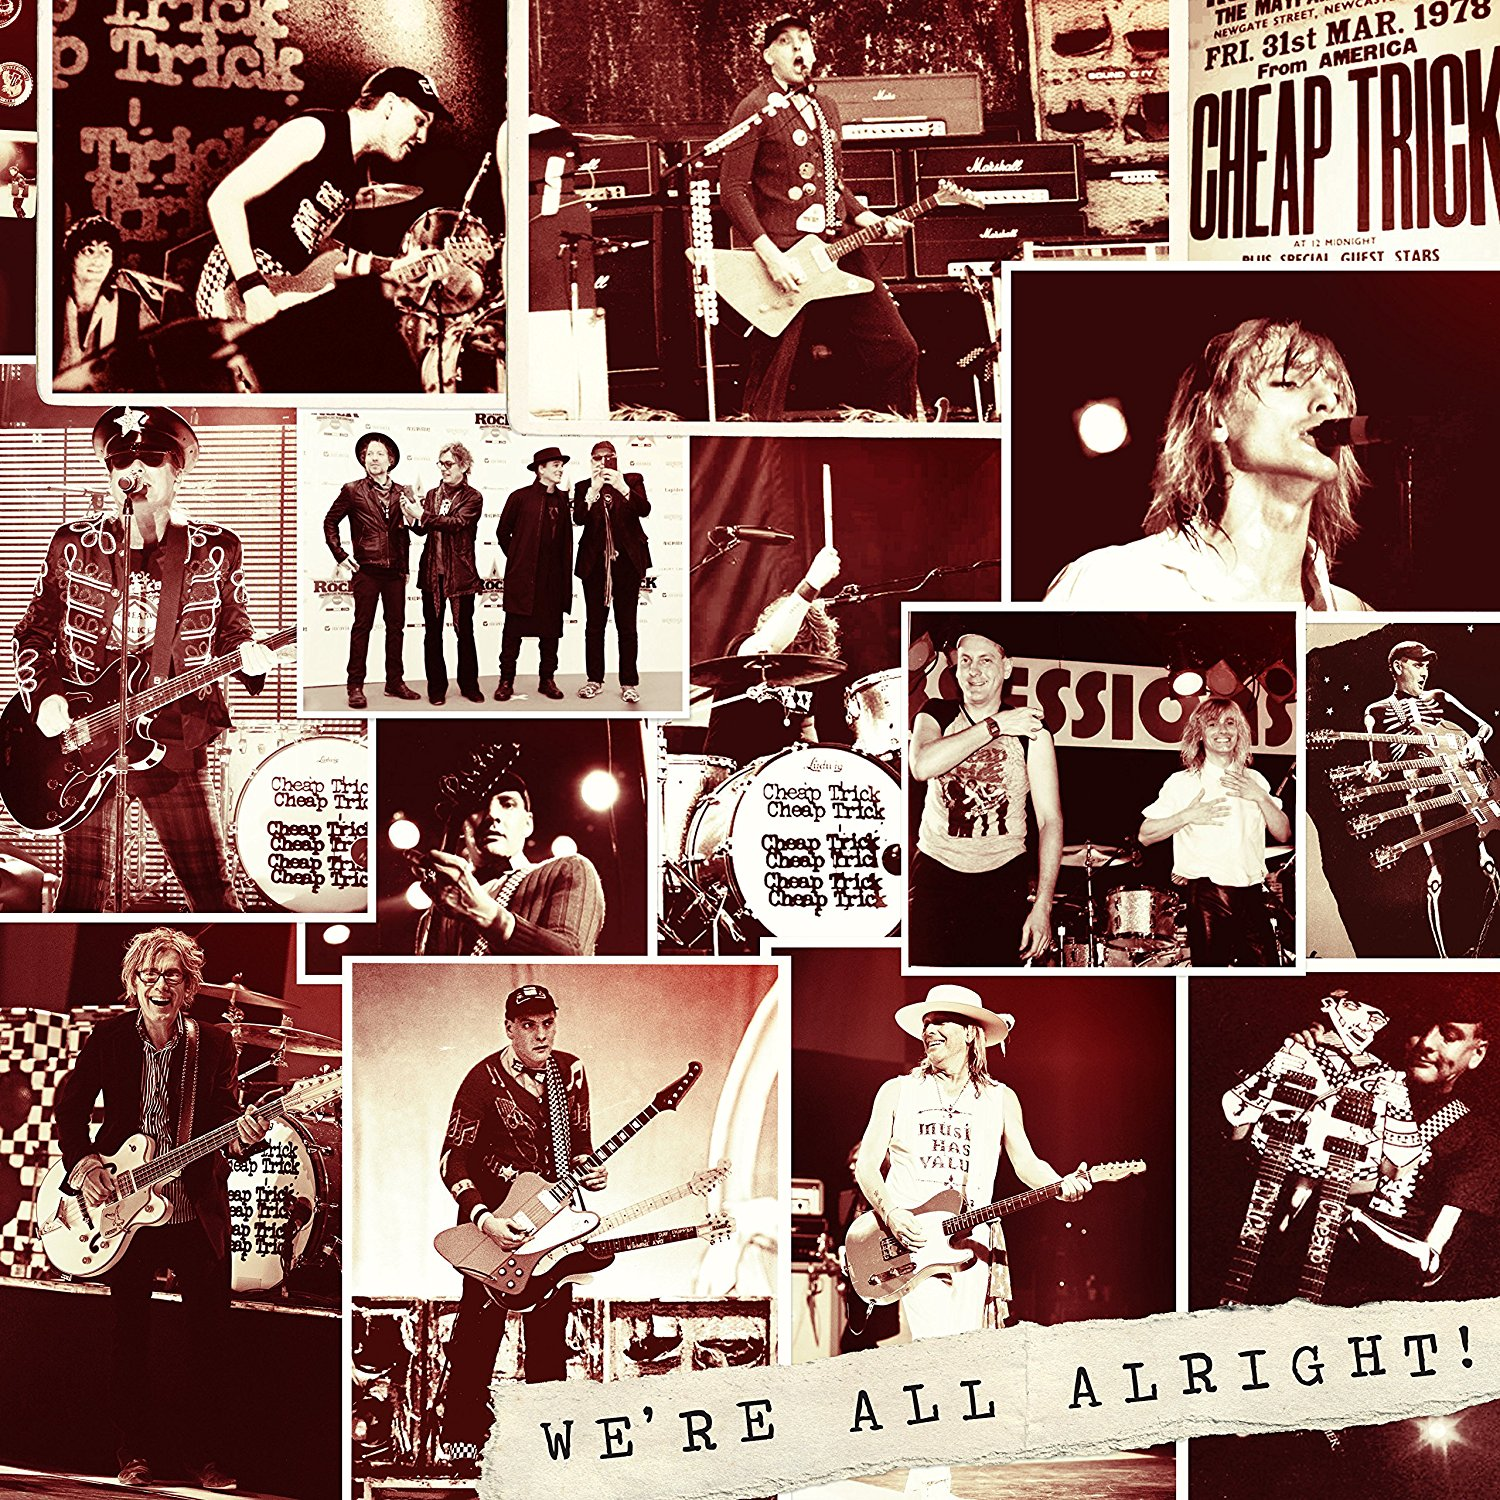 Cheap Trick: We're All Alright! [Album Review]